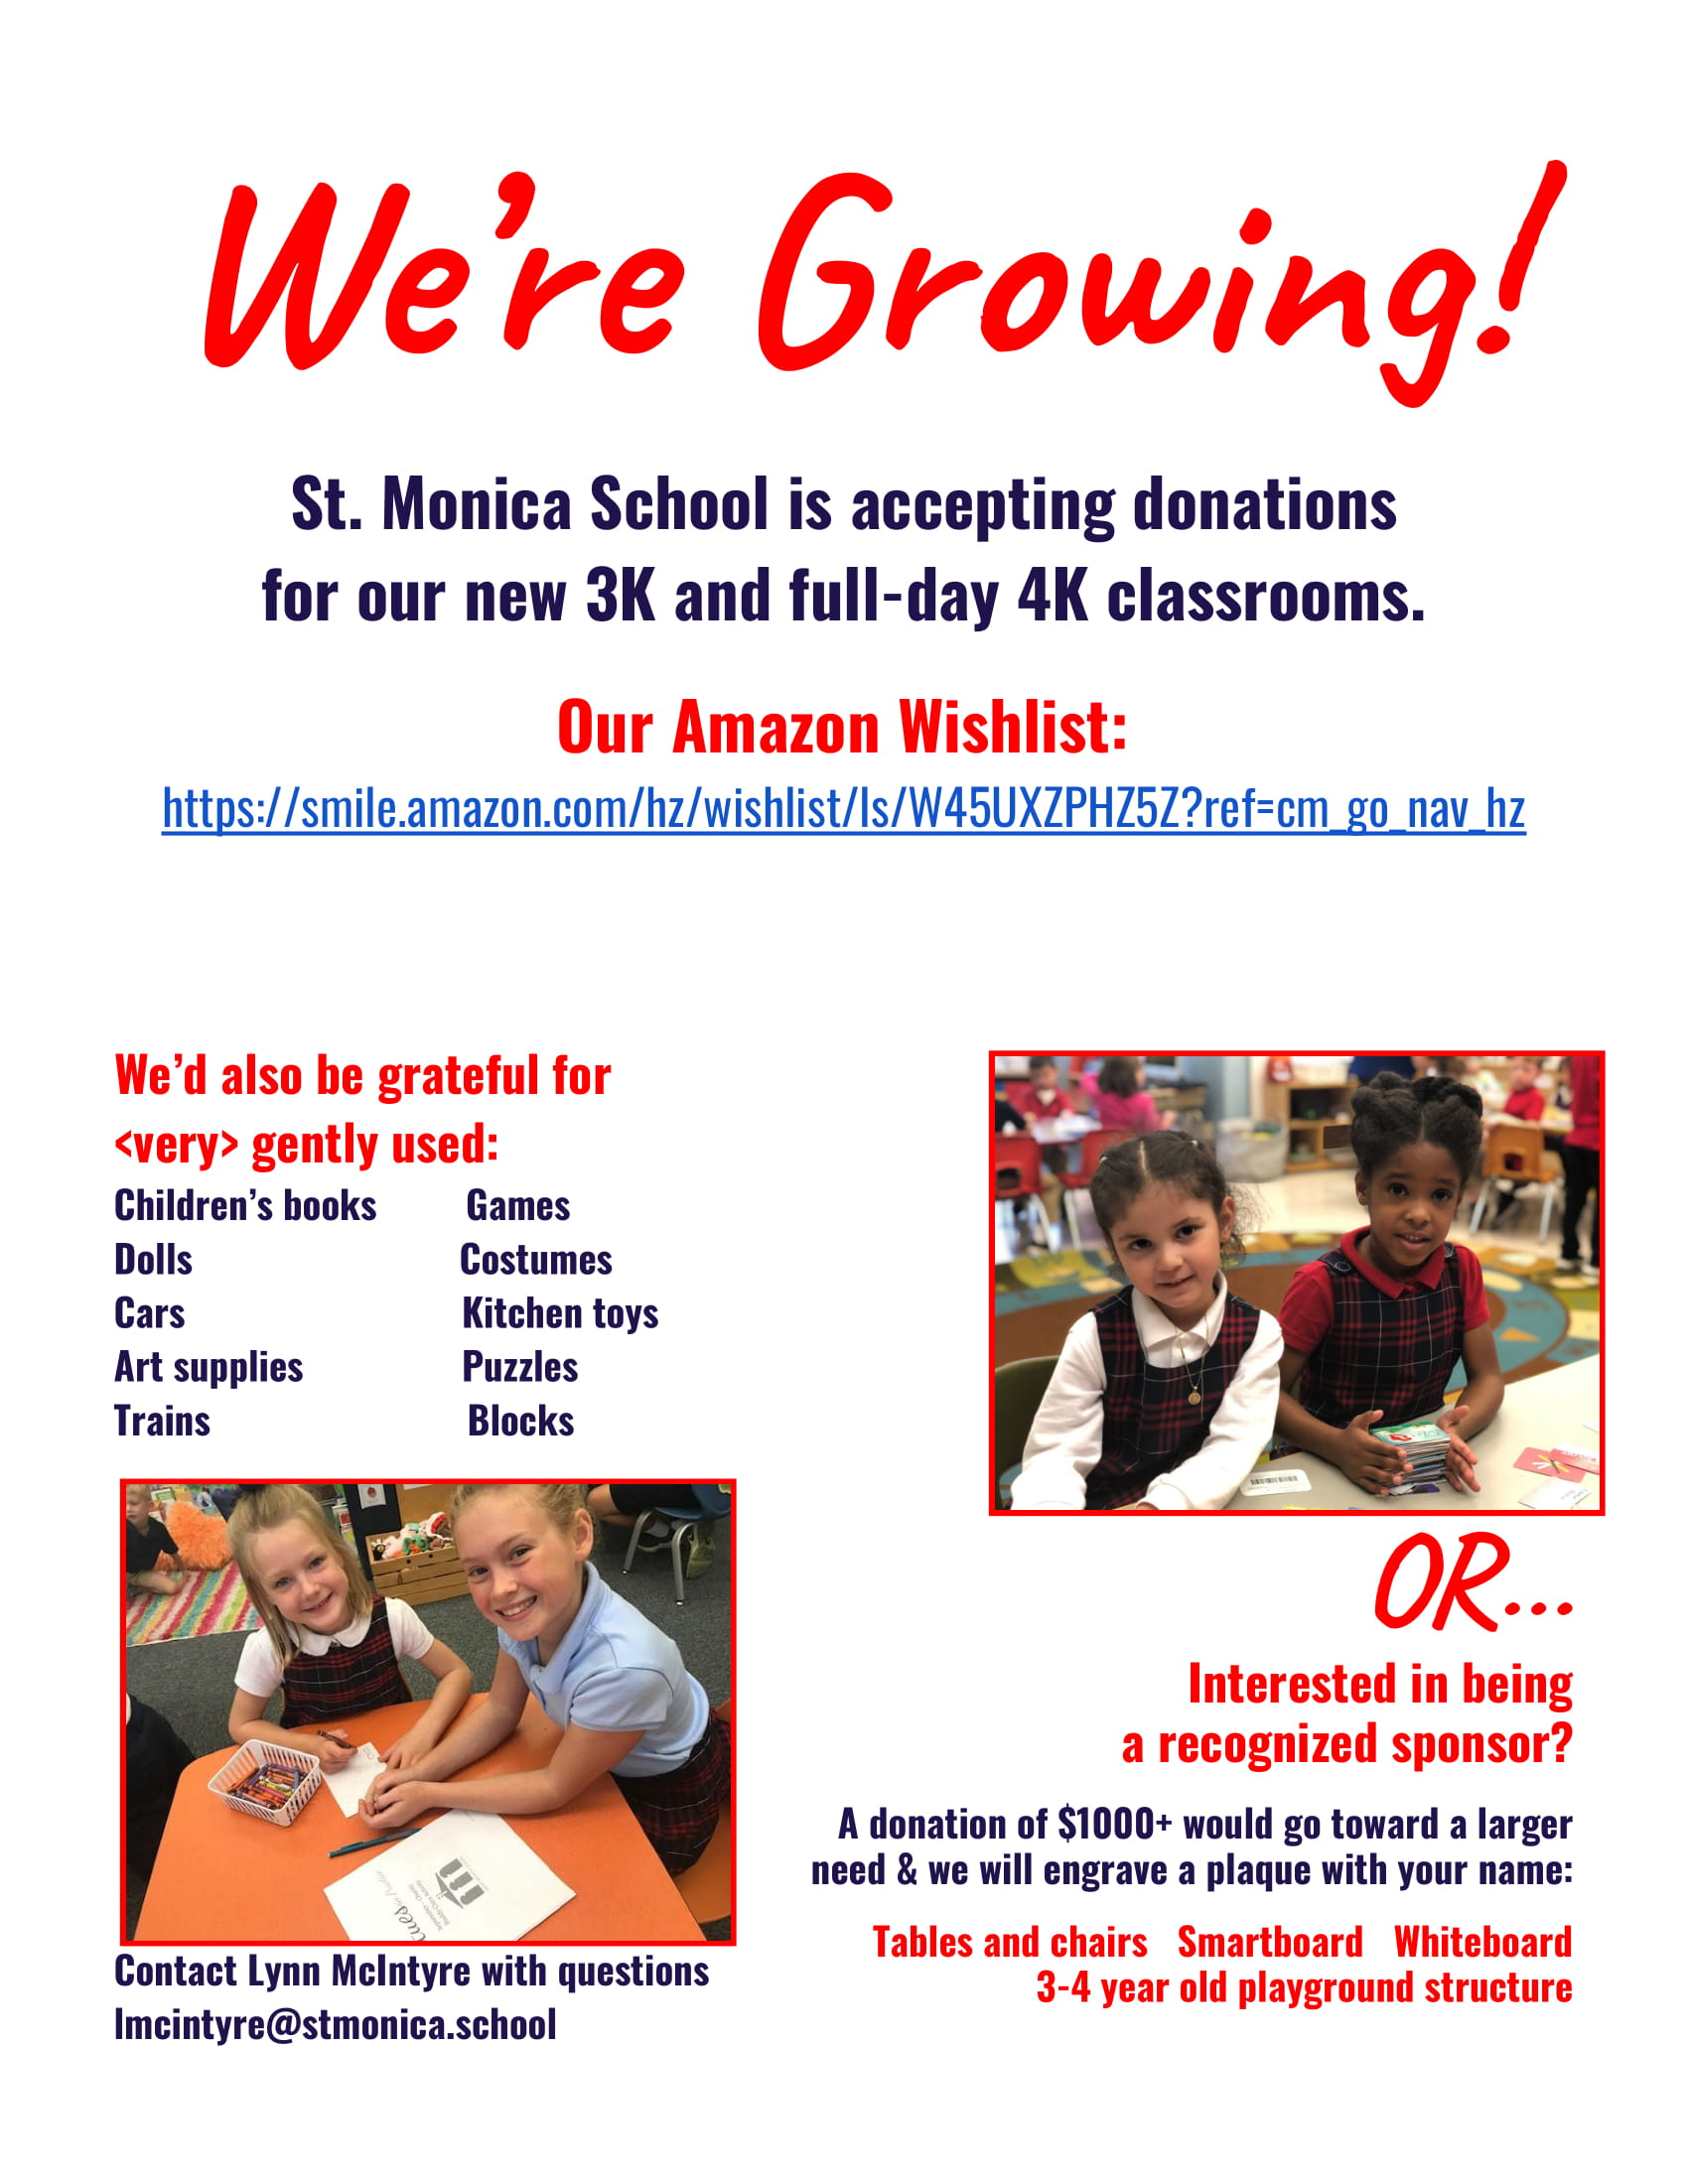 3k 4k donation request flyer-1.jpg